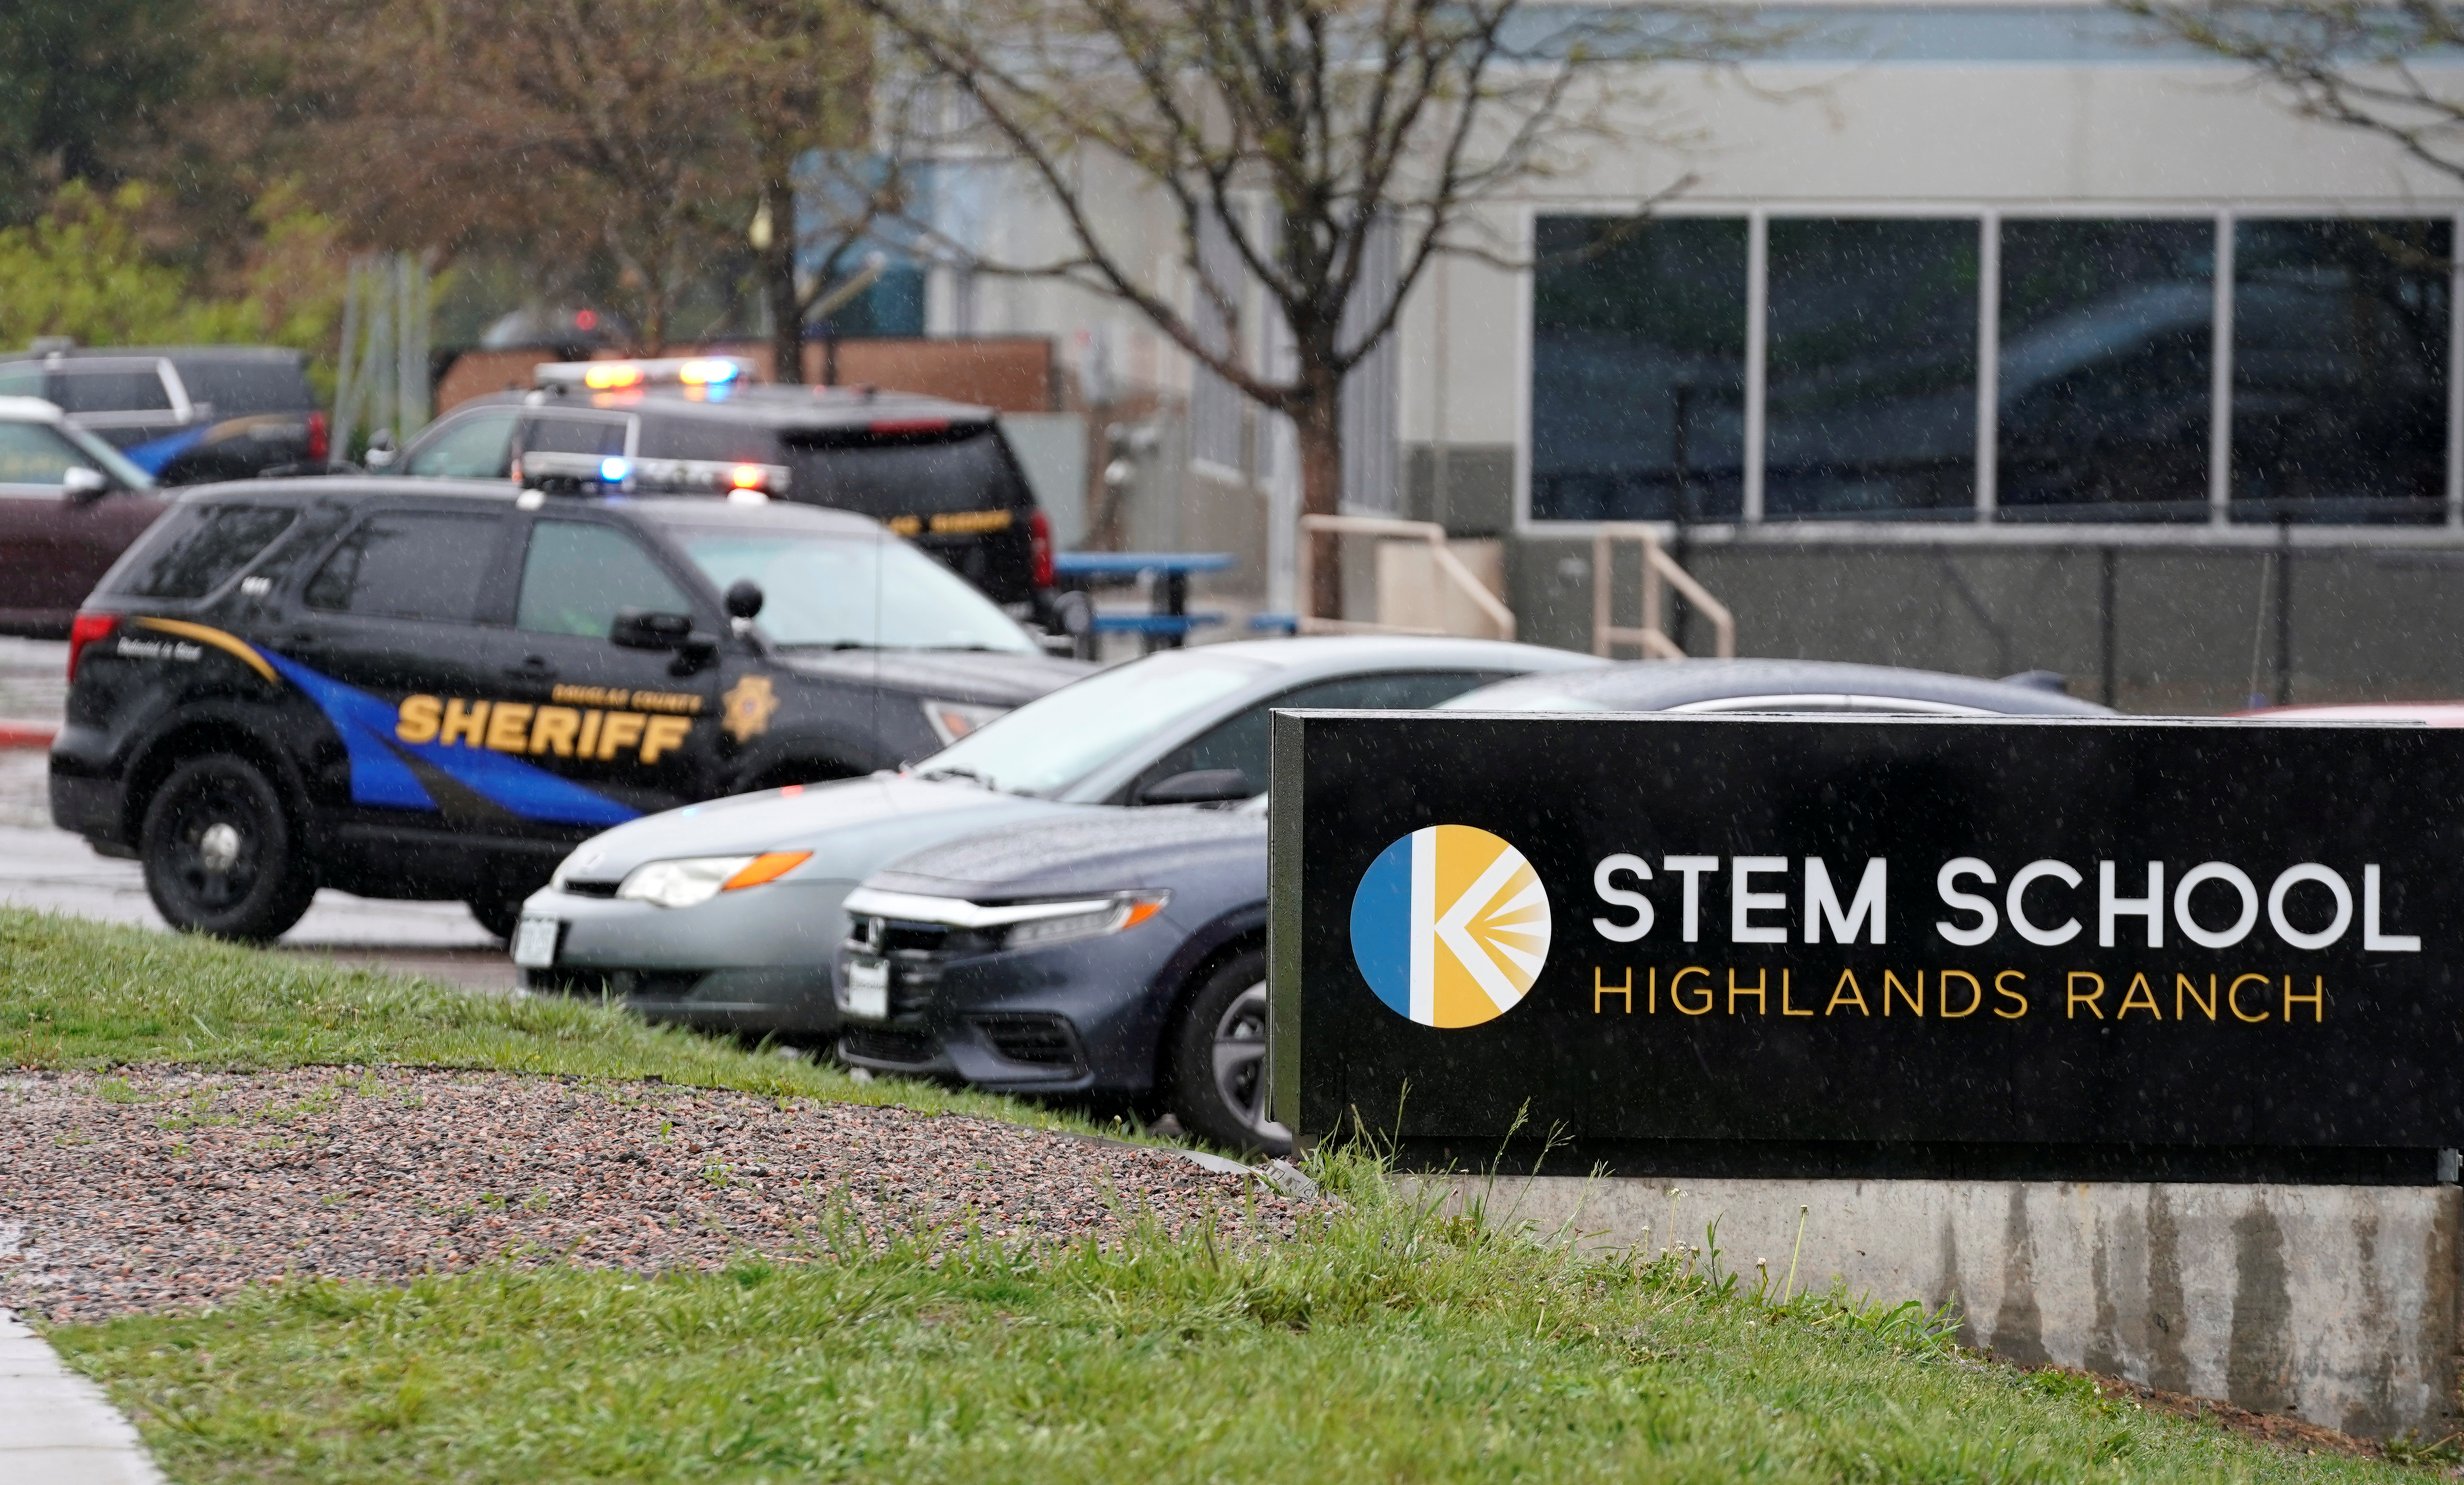 Police vehicles are stationed outside the school following the shooting at the Science, Technology, Engineering and Math (STEM) School in Highlands Ranch, Colorado, U.S., May 8, 2019. REUTERS/Rick Wilking